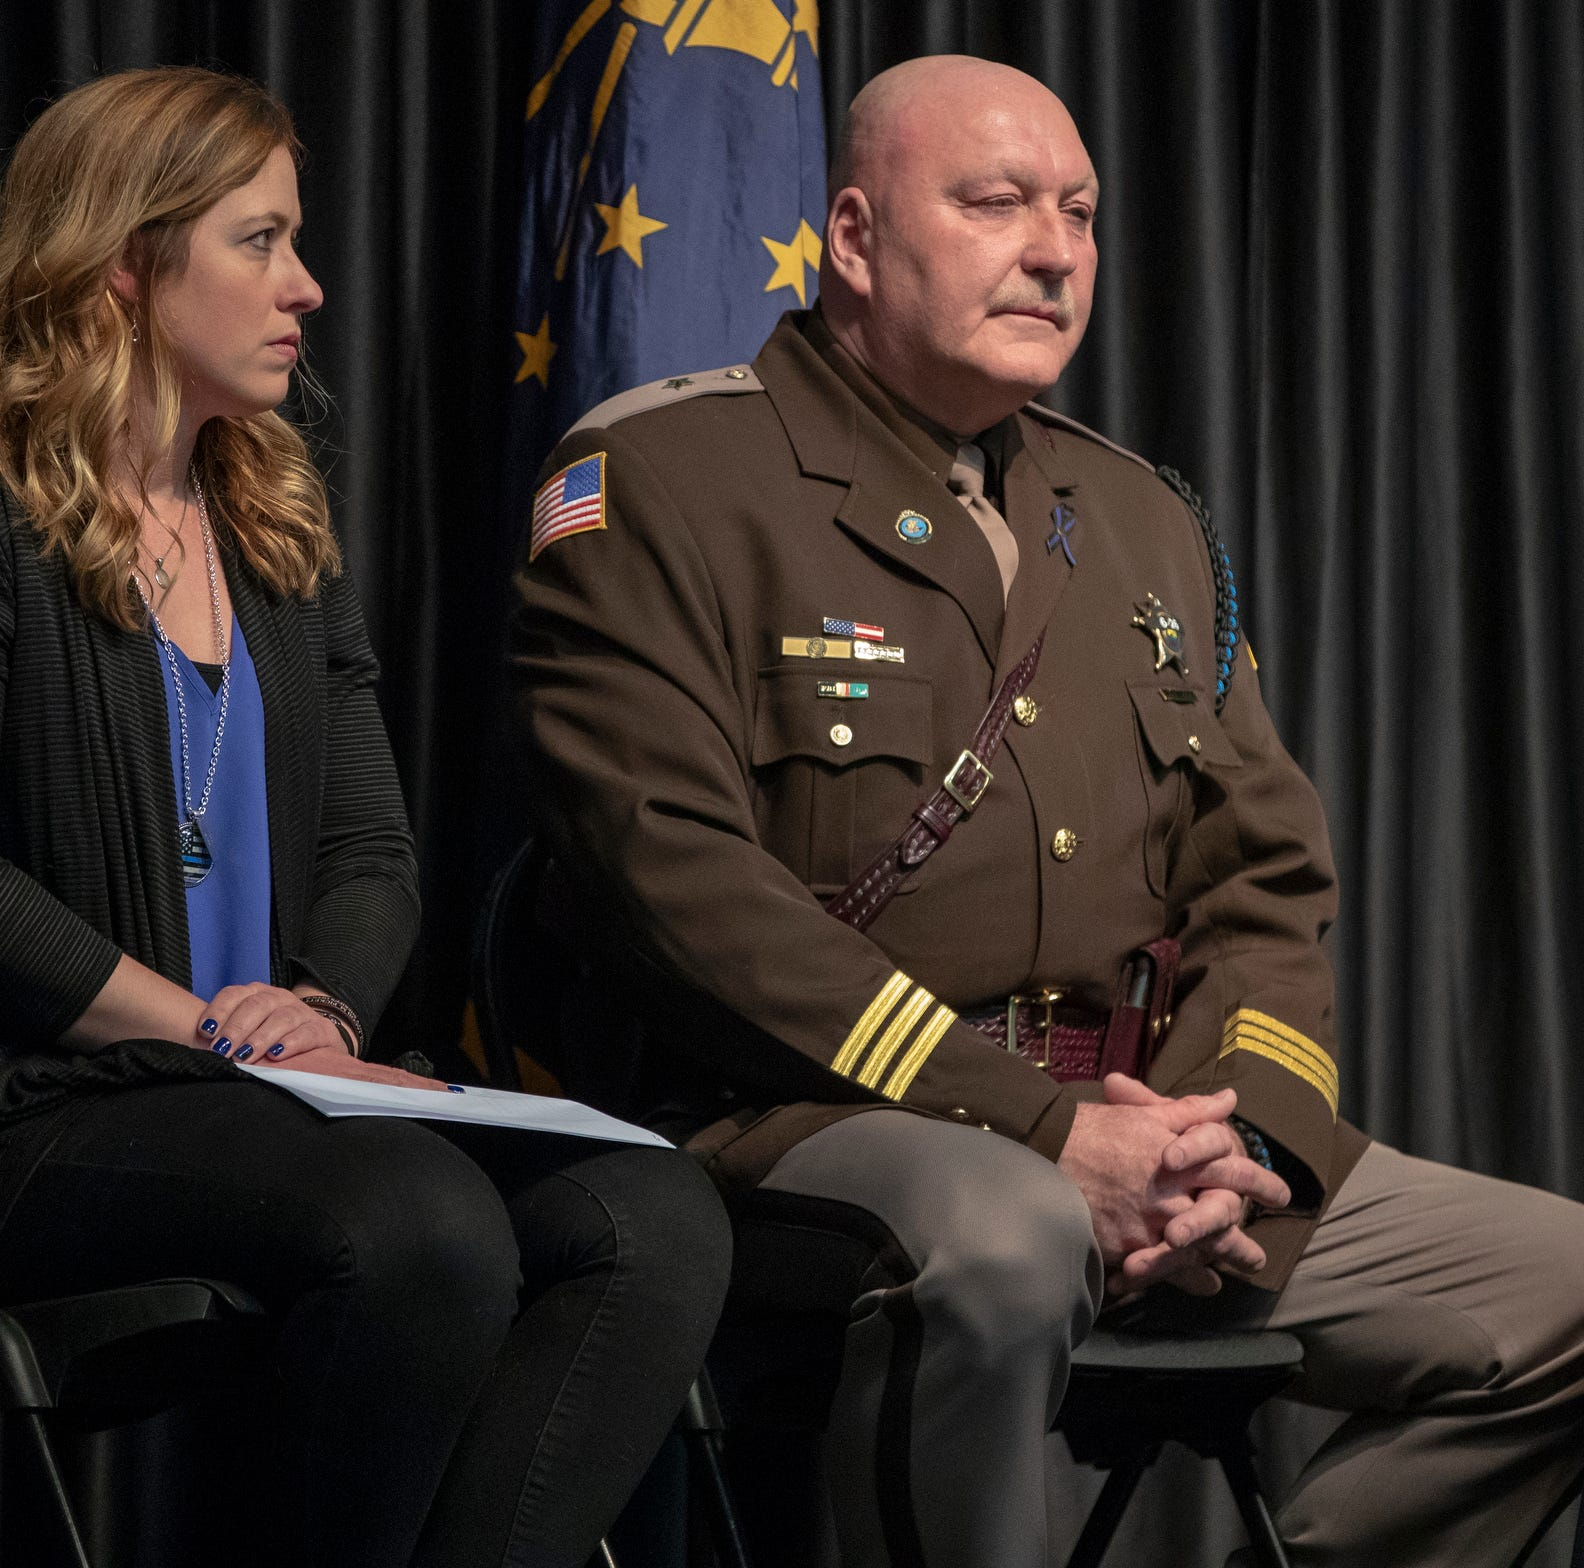 'Jake gave his whole heart to others': Fallen deputy's widow speaks out 1 year after shooting